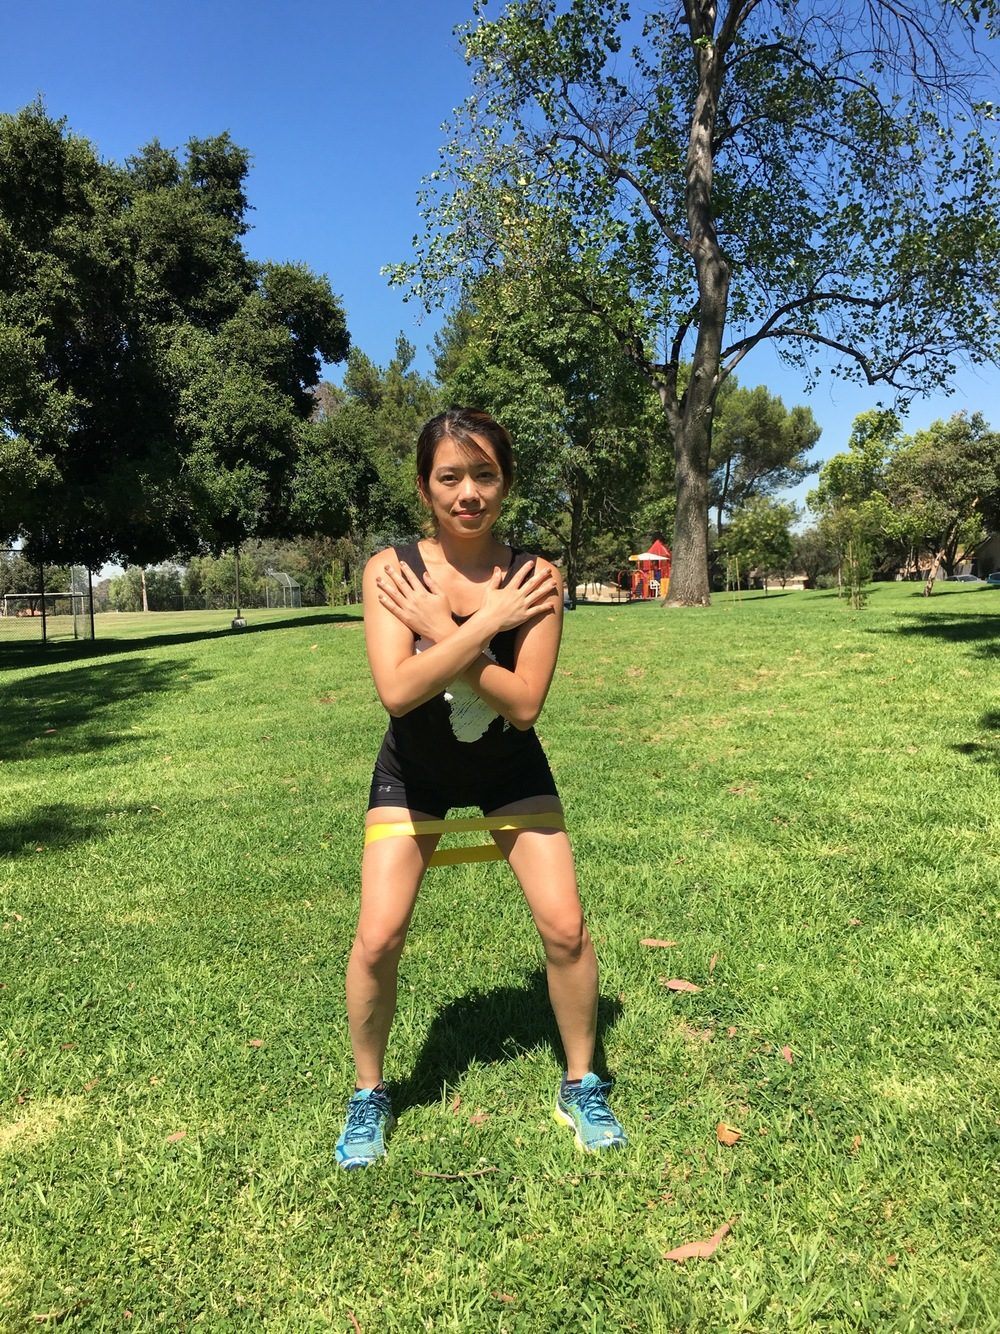 Step 1: Starting position front view. Feet spread apart outside hip width and knees aligned with ankles.